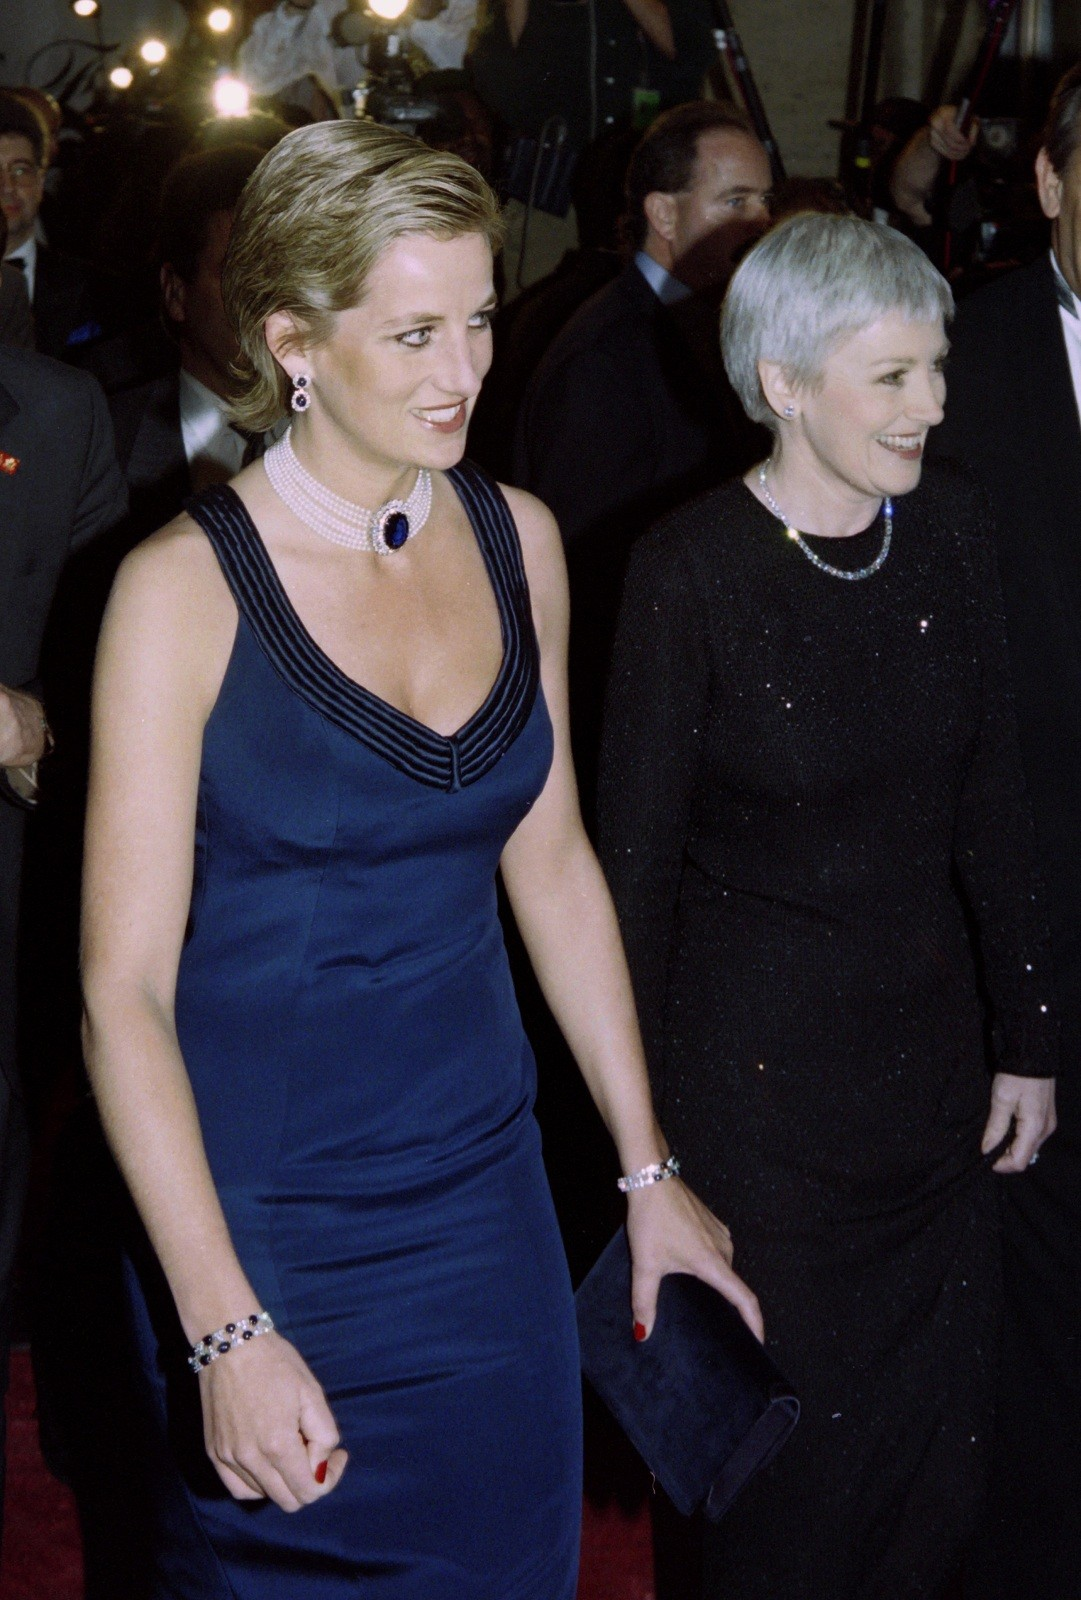 Diana: Fashionista who shook up the royal dress code - Lifestyle ...